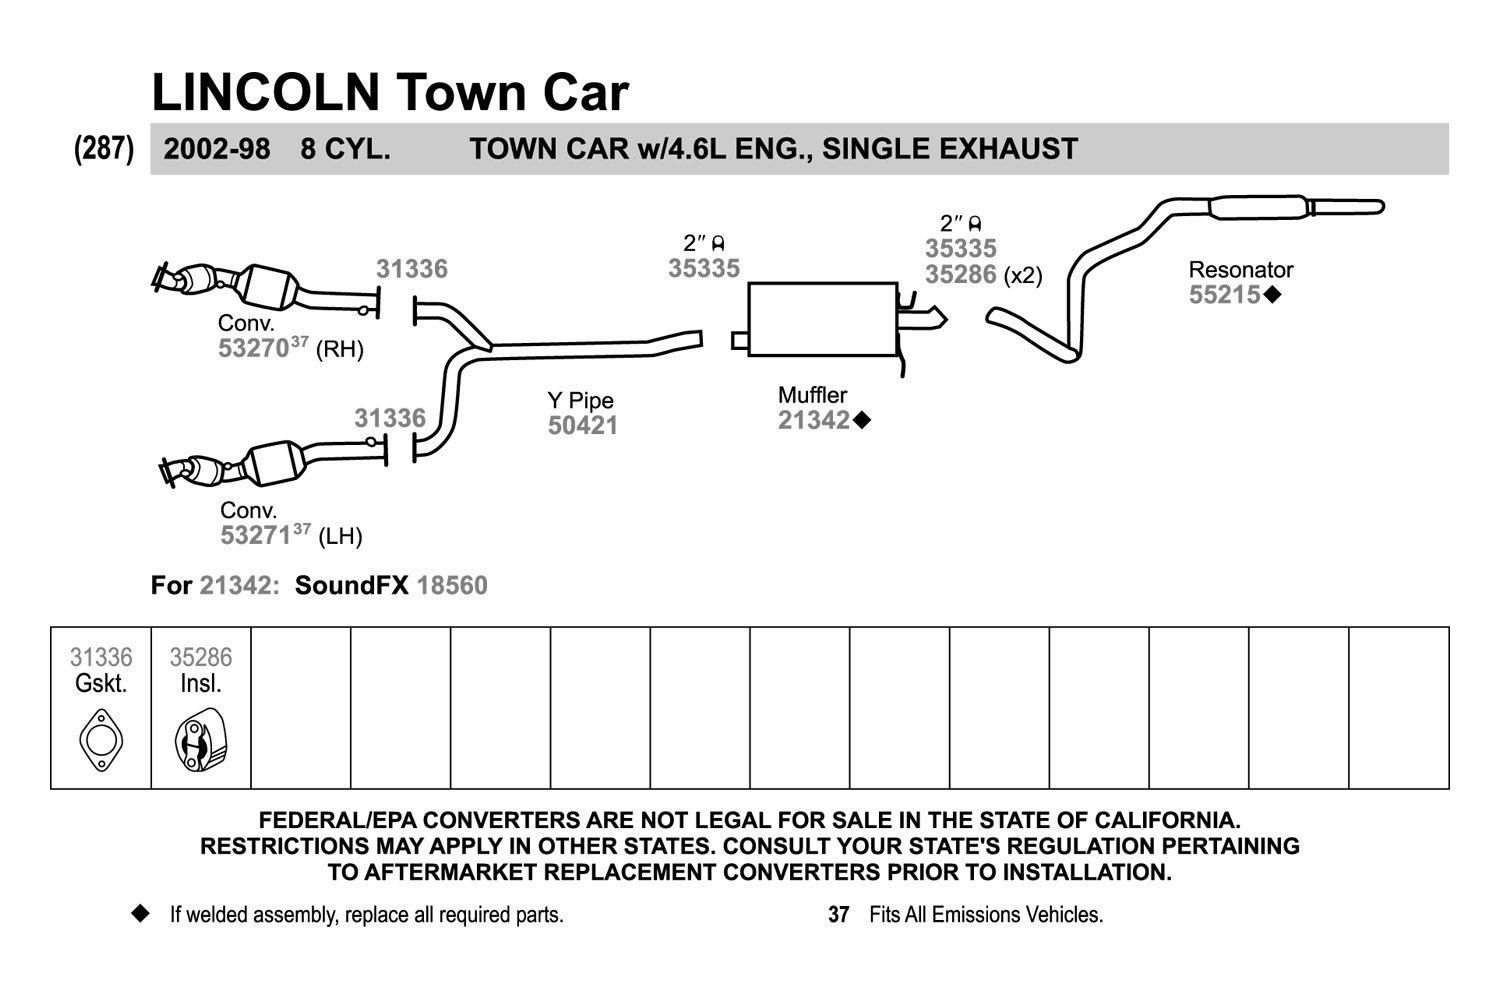 1999 lincoln town car exhaust diagram diy enthusiasts wiring 2000 lincoln town car exhaust diagram anything wiring diagrams u2022 rh flowhq co 1998 lincoln town car 1998 lincoln town car asfbconference2016 Gallery